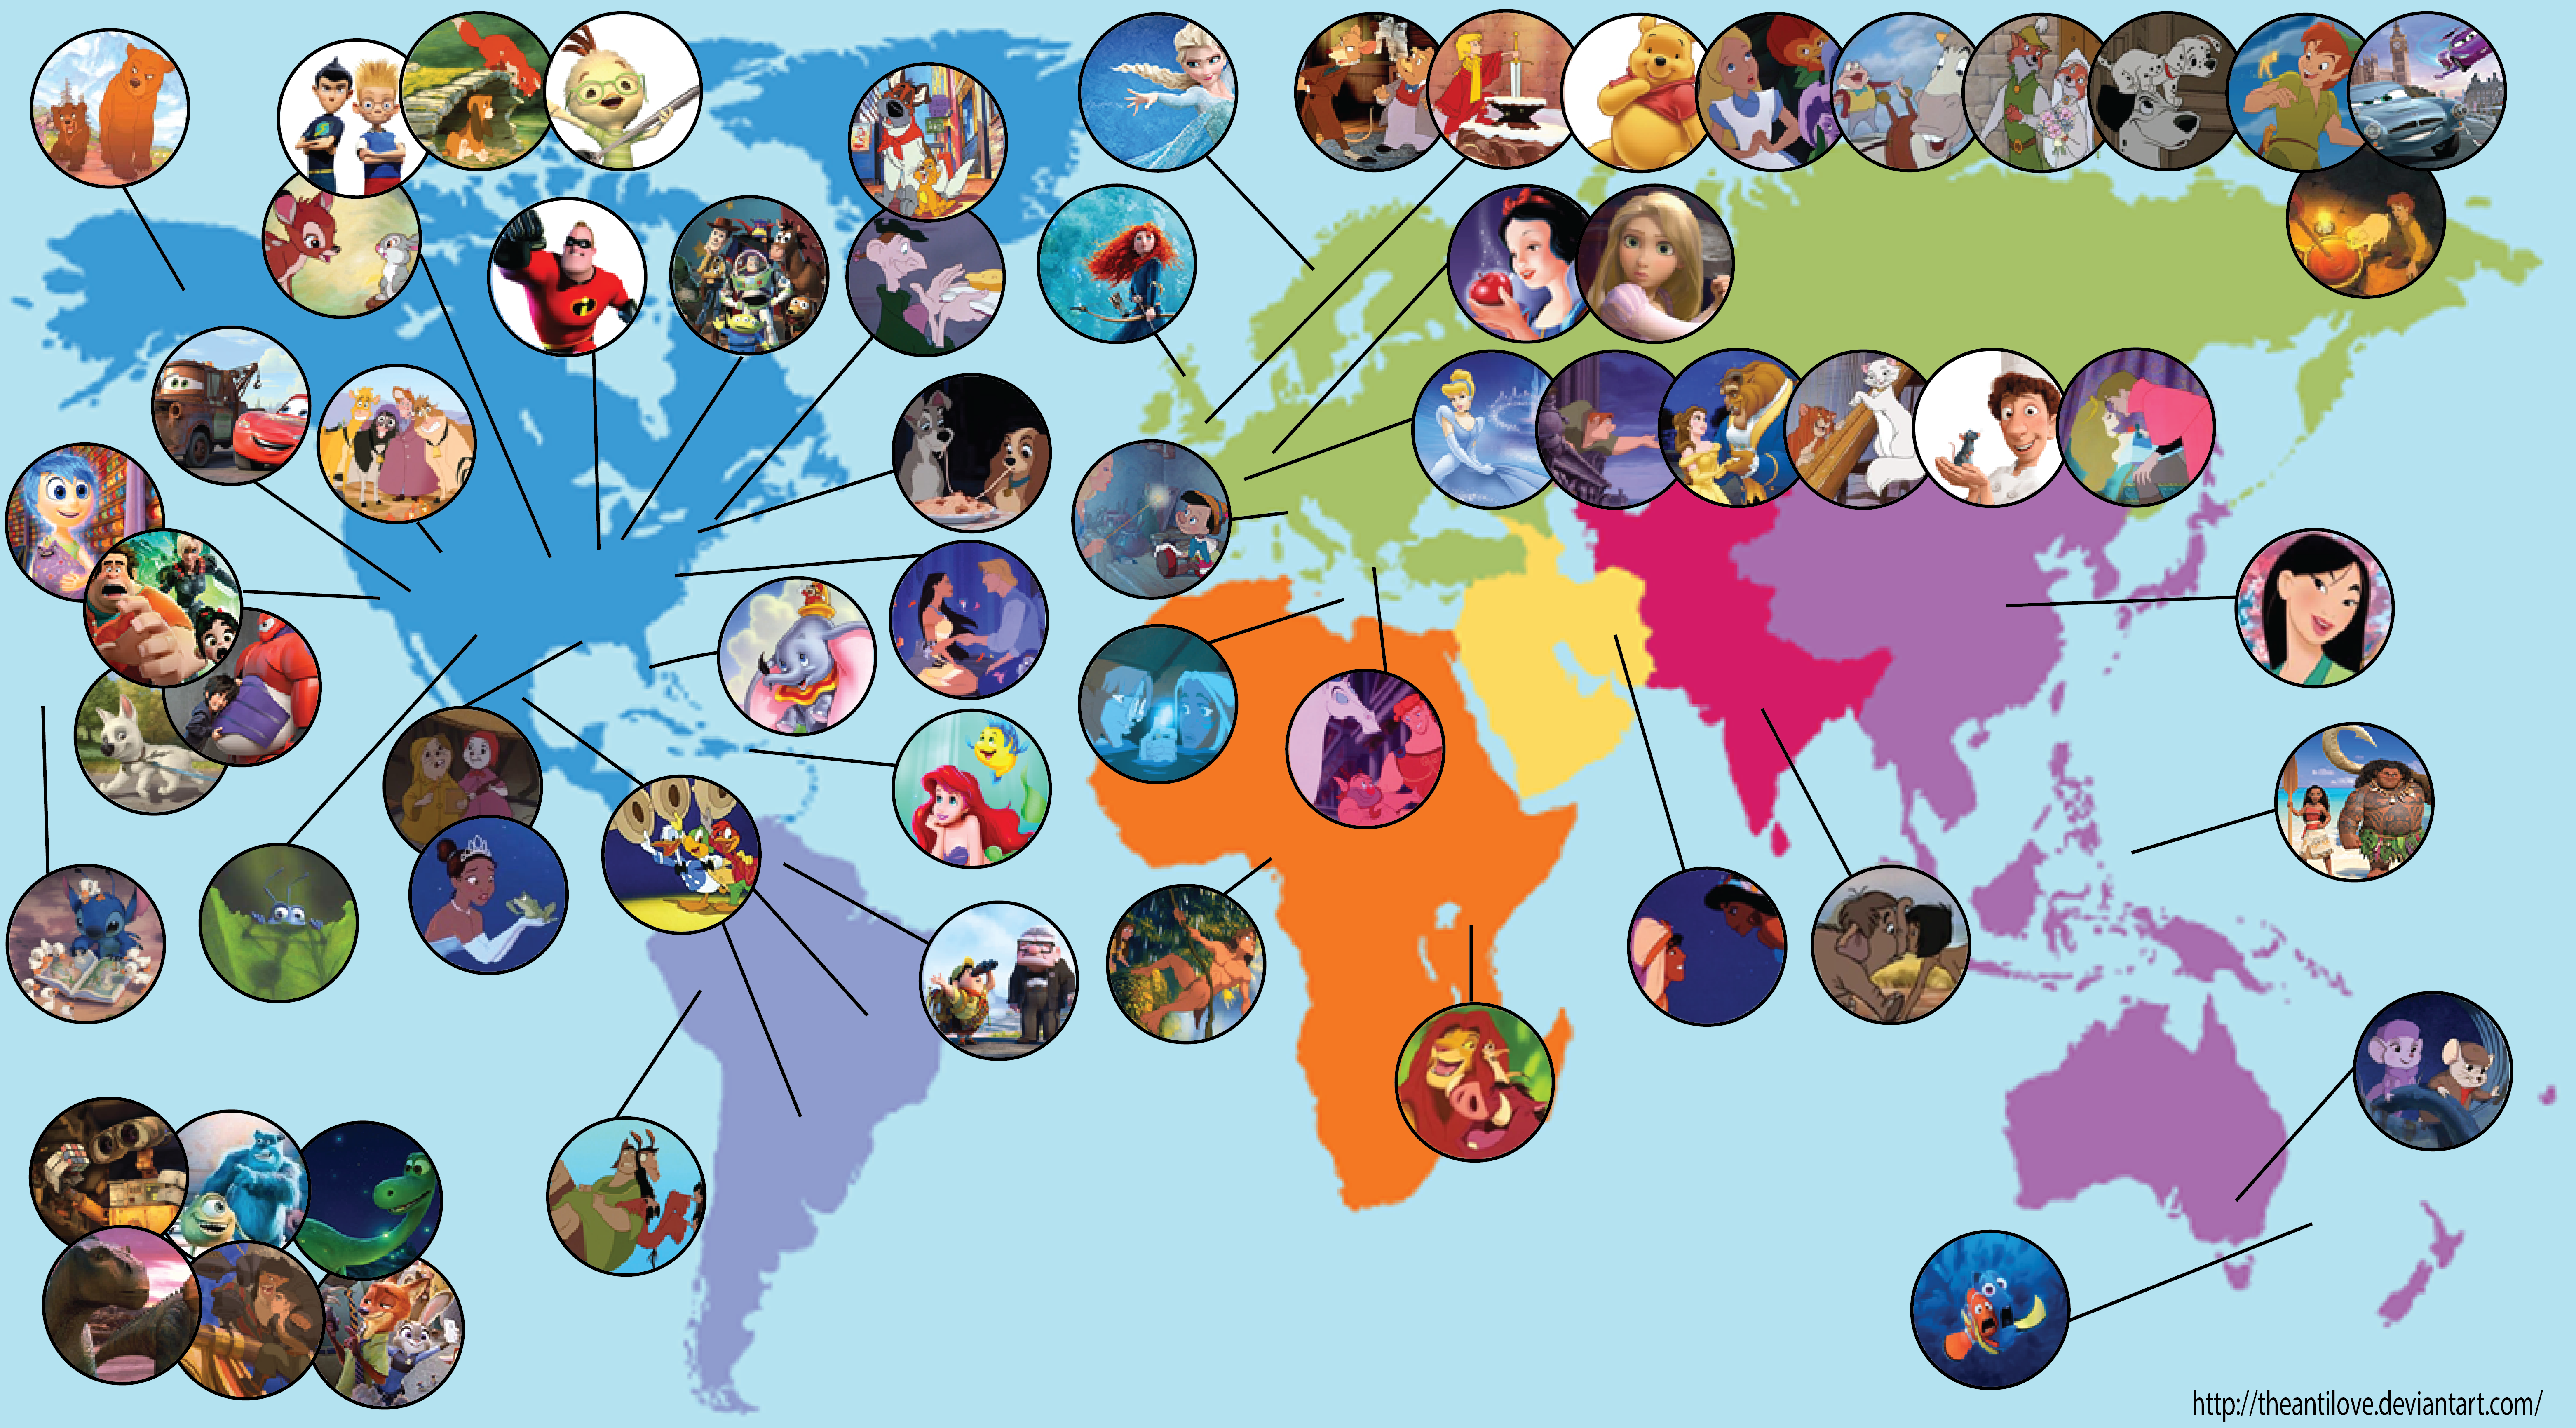 Disney Map by theantilove on DeviantArt